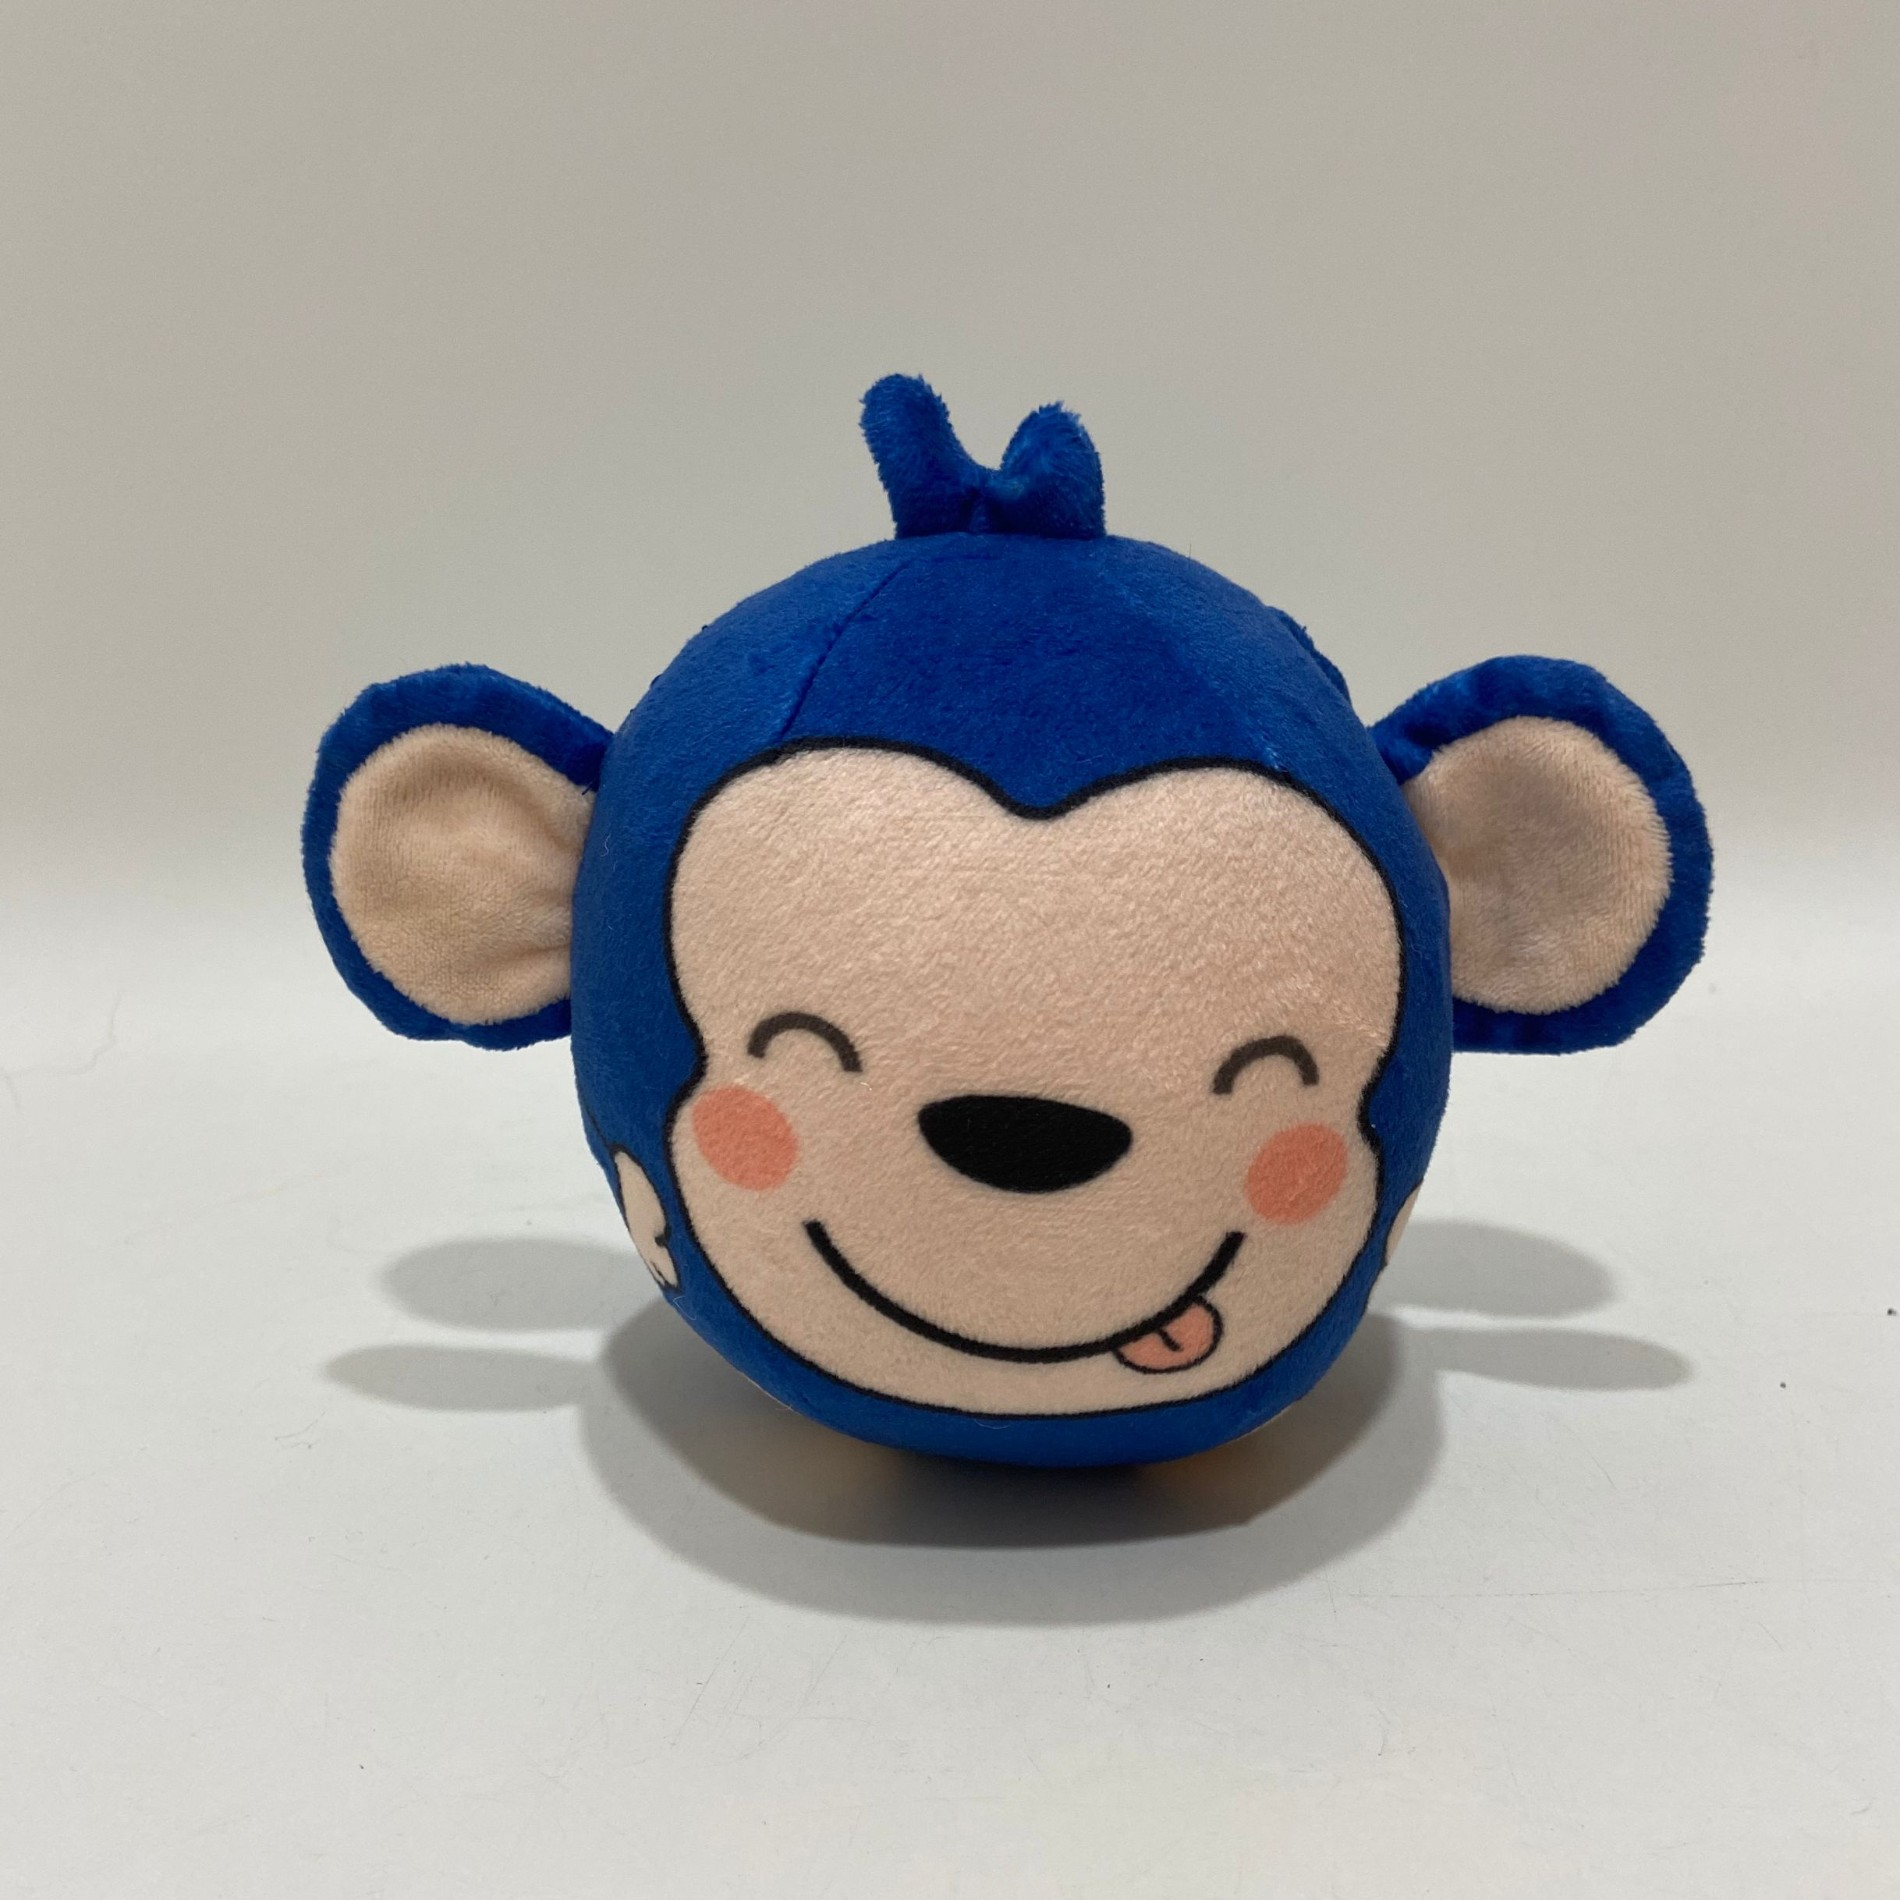 OEM Shaking Bounce animated plush monkey toy